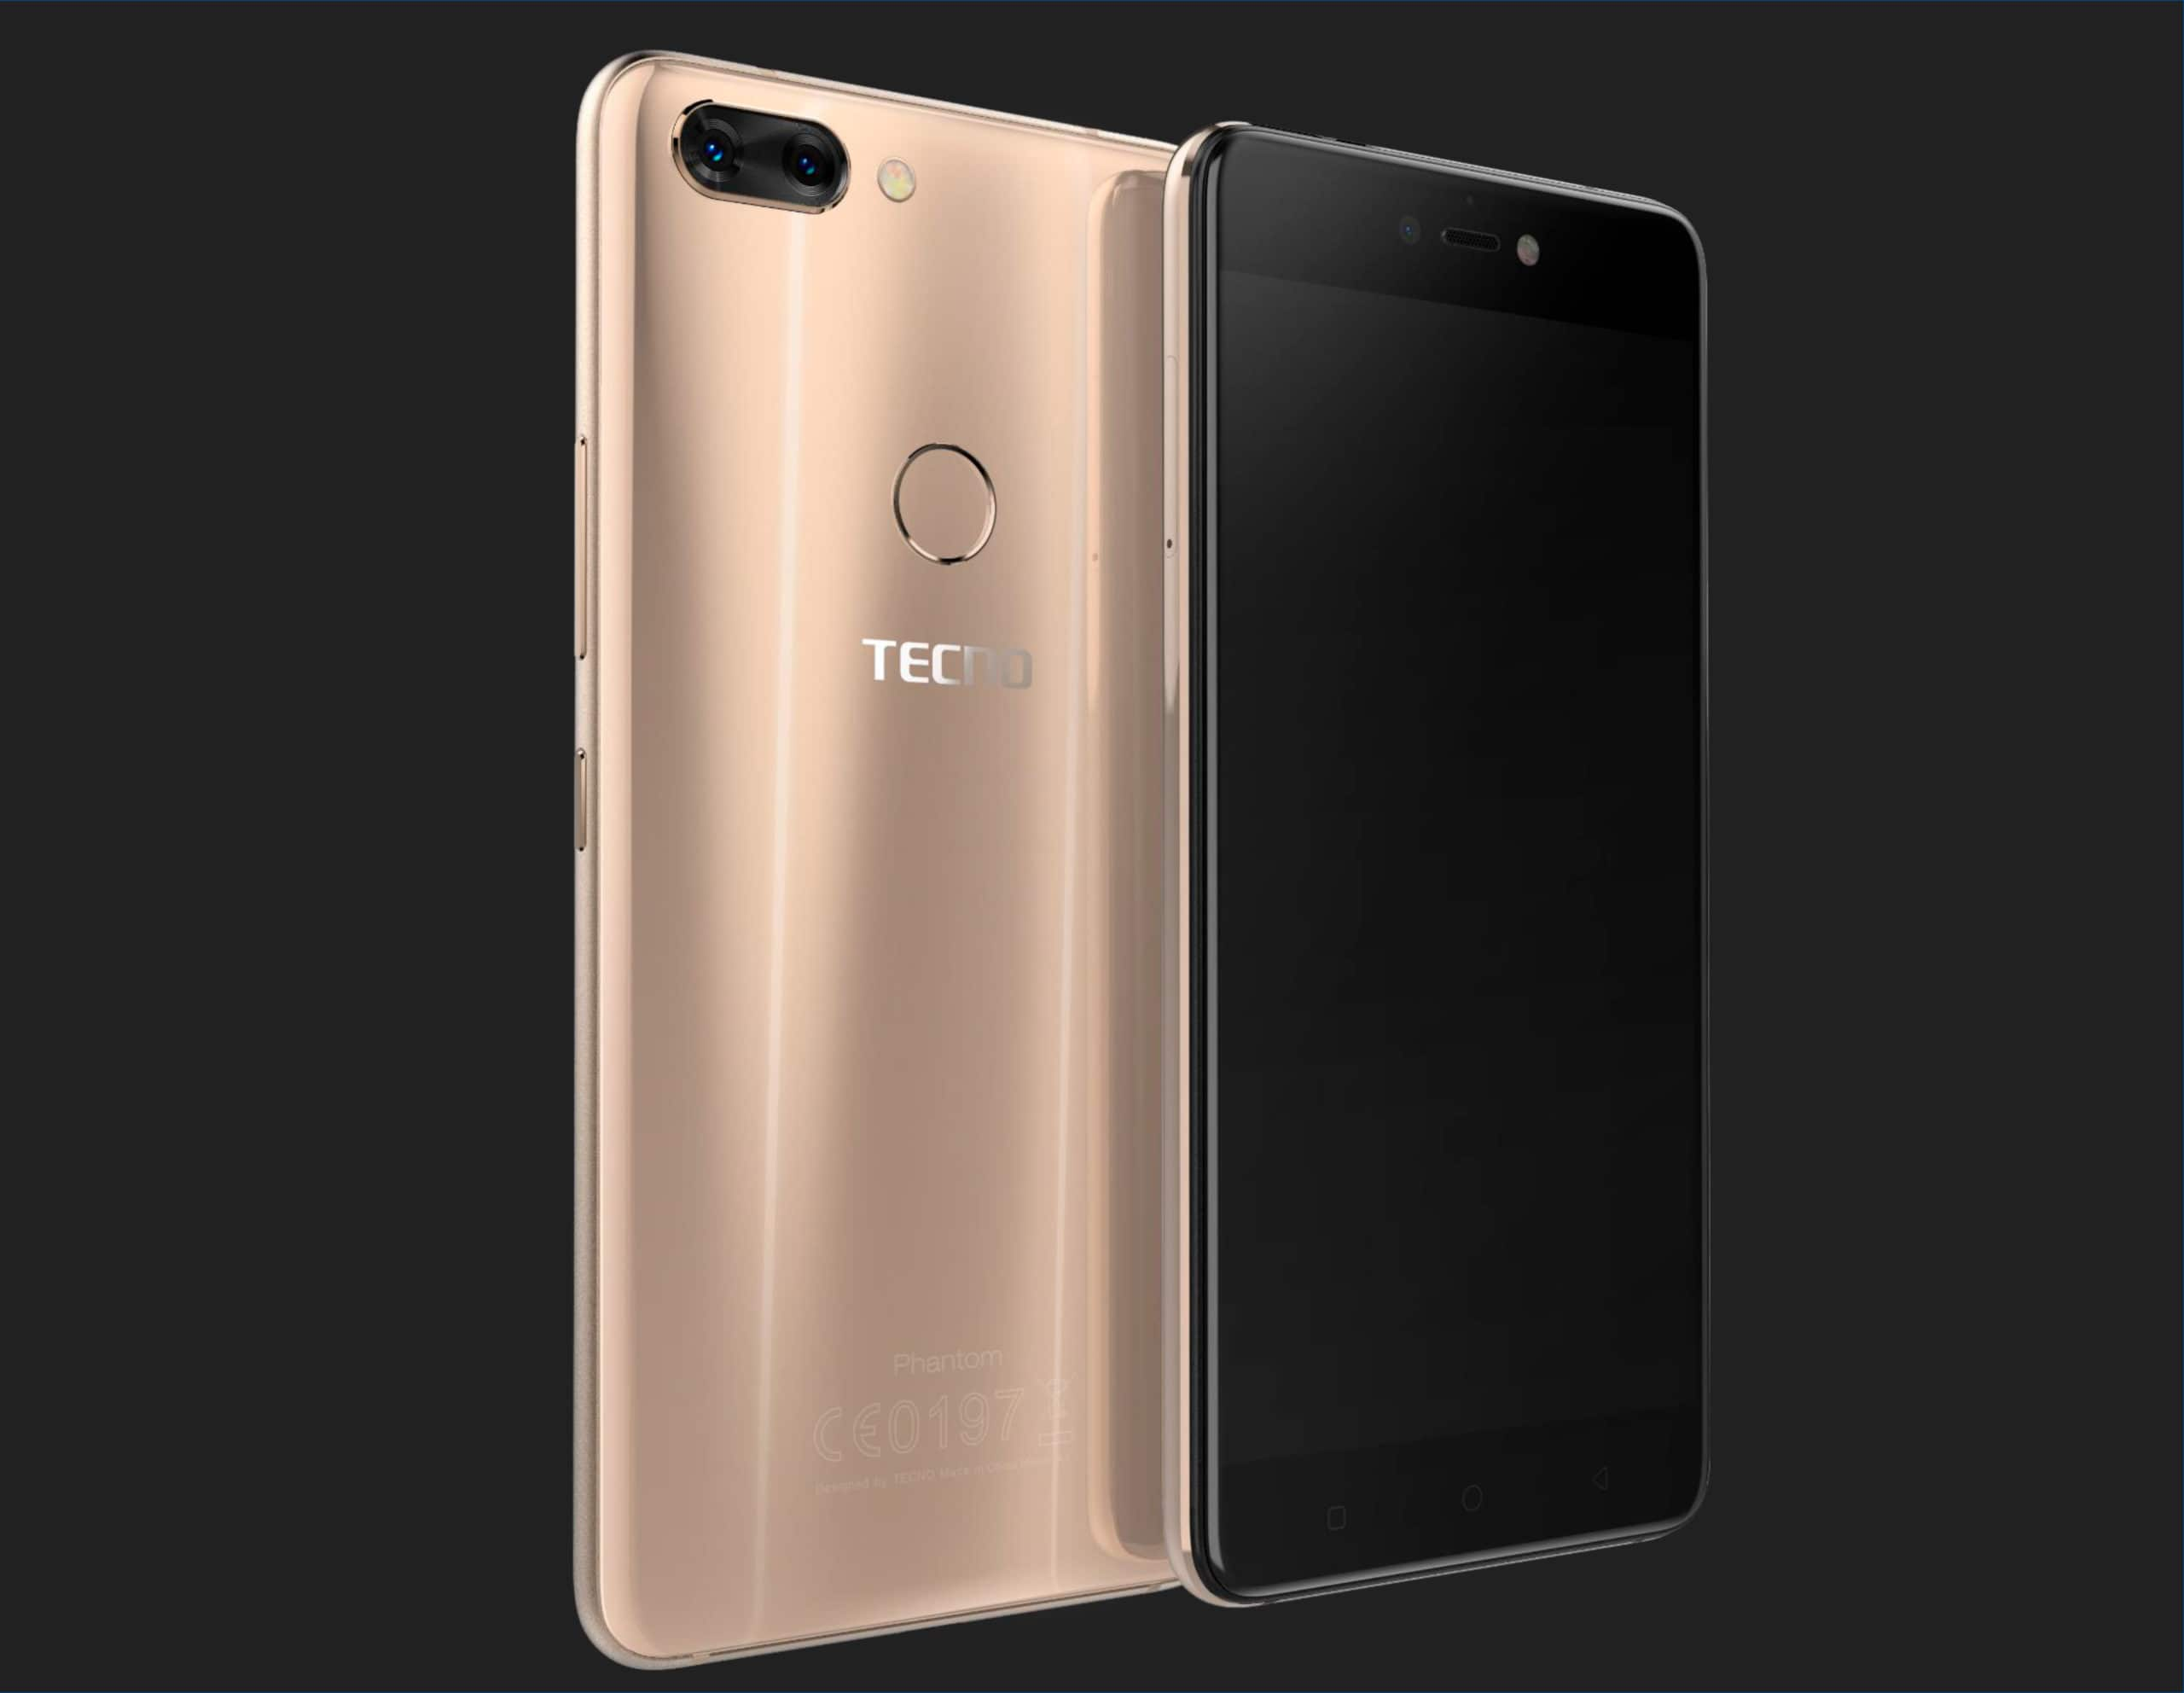 Tecno Aiming To Be Among Top 5 Smartphone Brands In Rs 7k